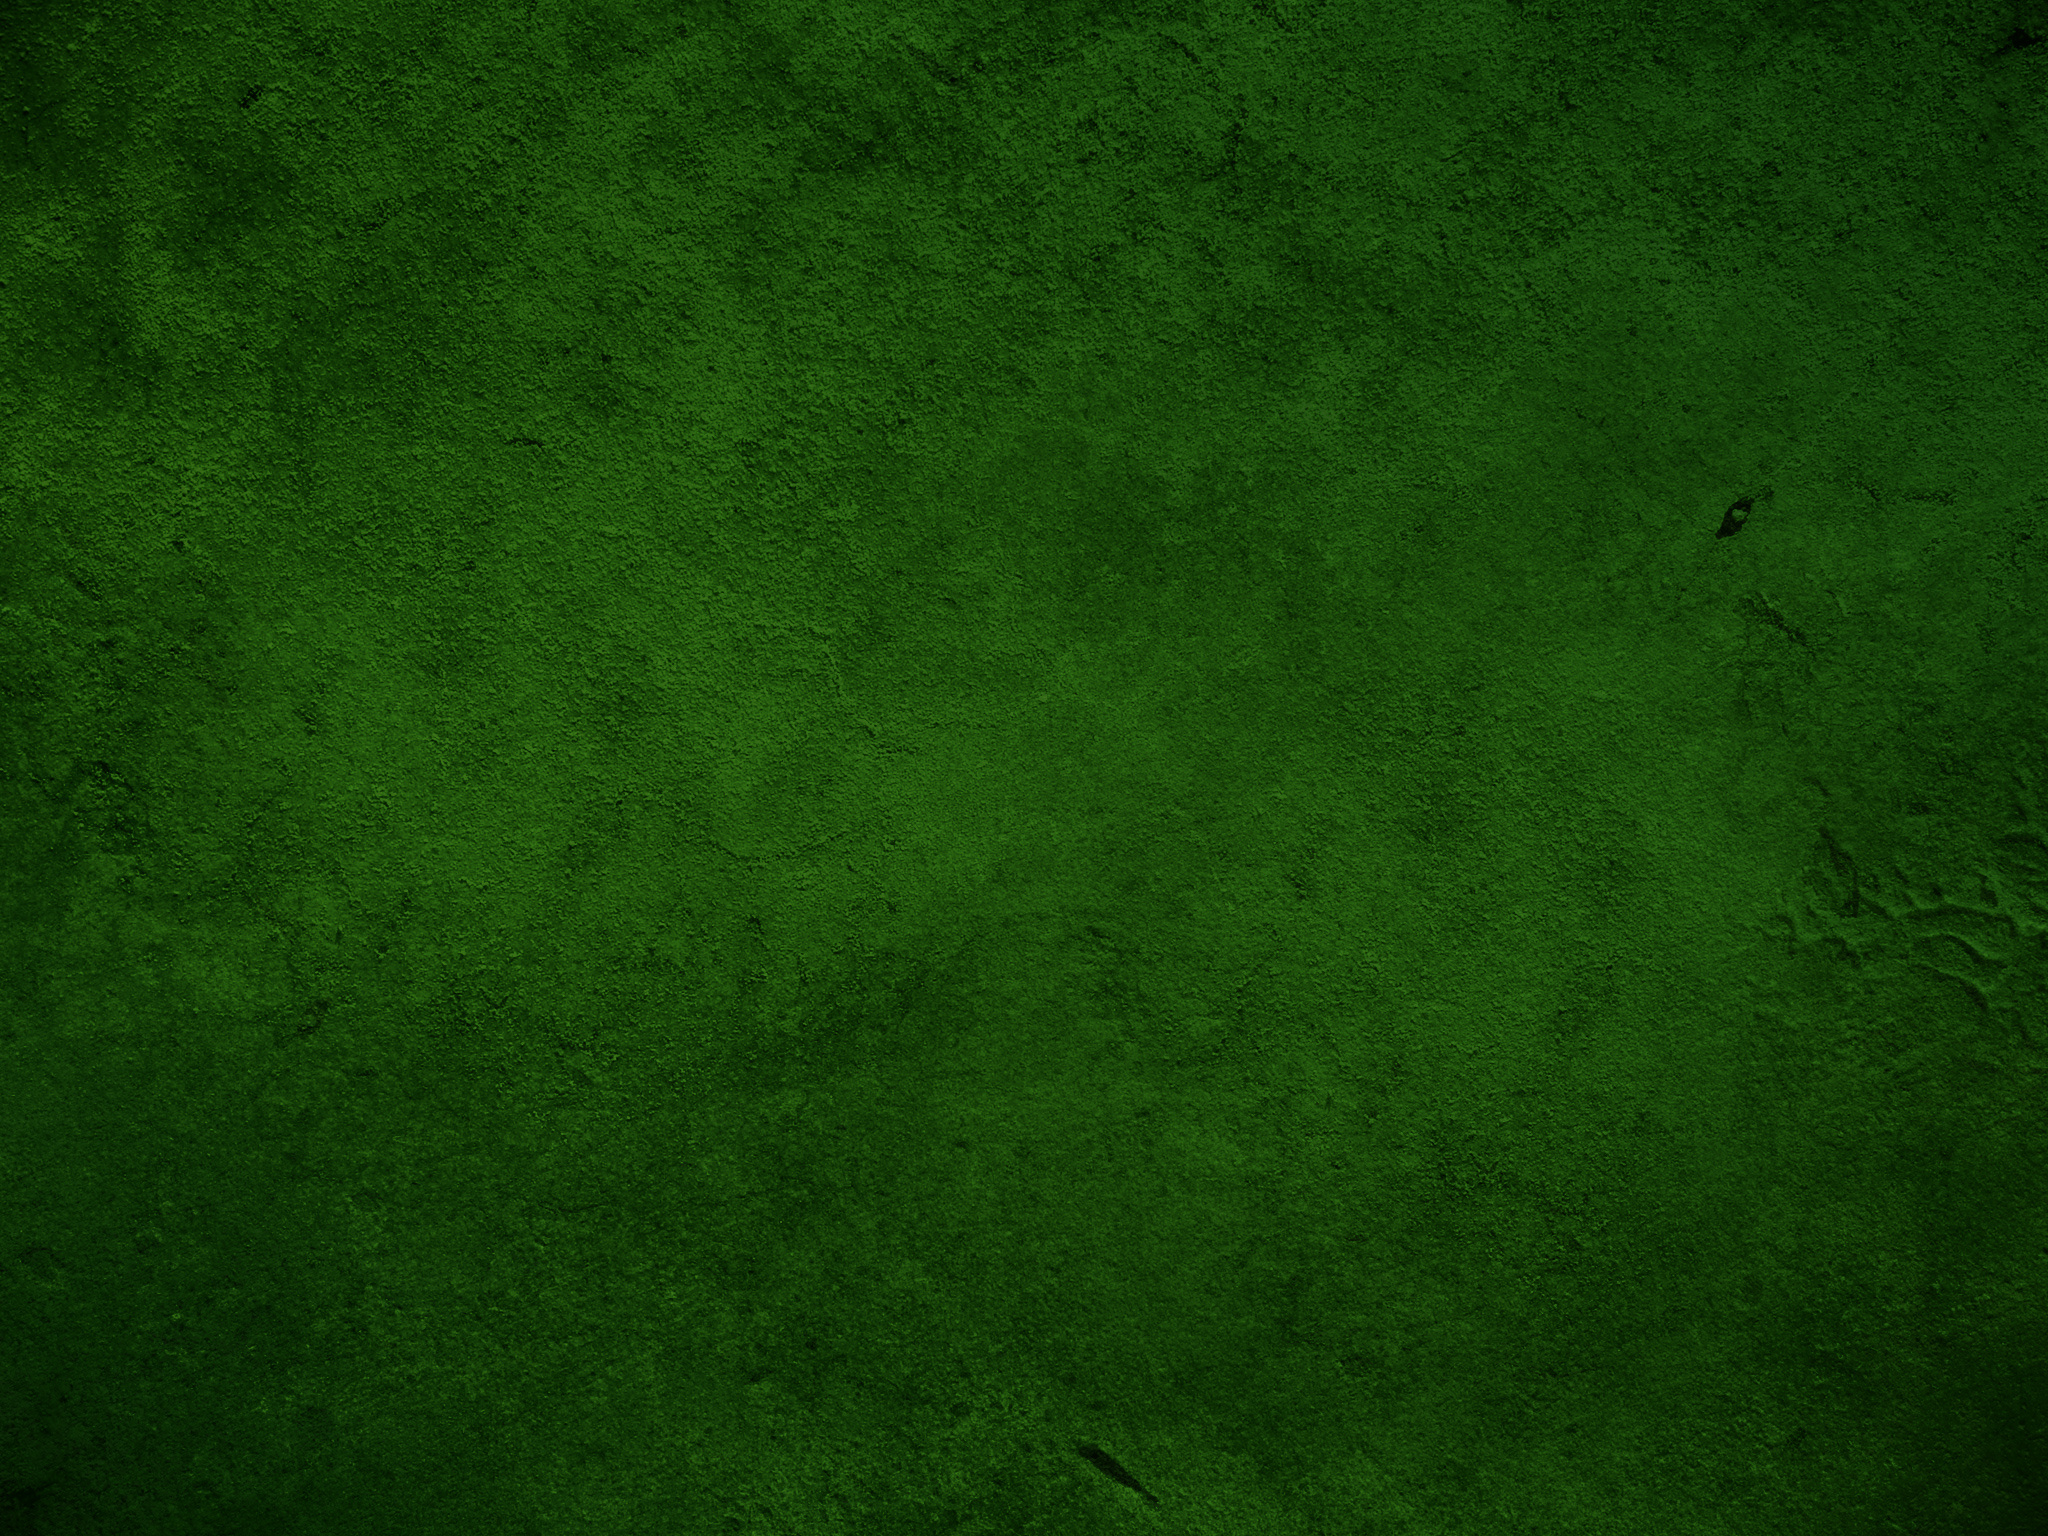 Https Wallpapersafari Com Dark Green Background Wallpaper